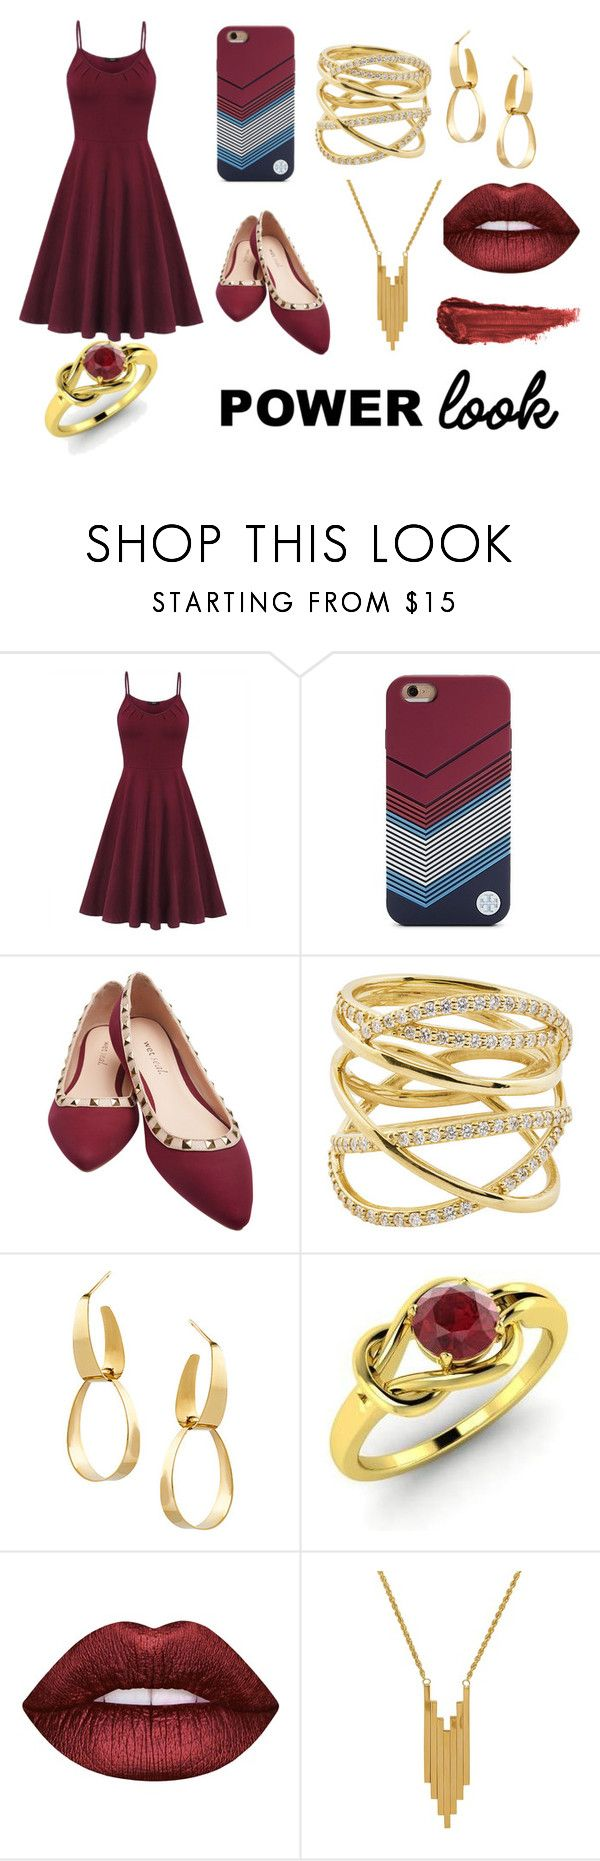 """""""Sin título #364"""" by candy-nohemi-velazco-mendiola ❤ liked on Polyvore featuring Tory Burch, Wet Seal, Lana, Diamondere, Lime Crime, Lord & Taylor and By Terry"""